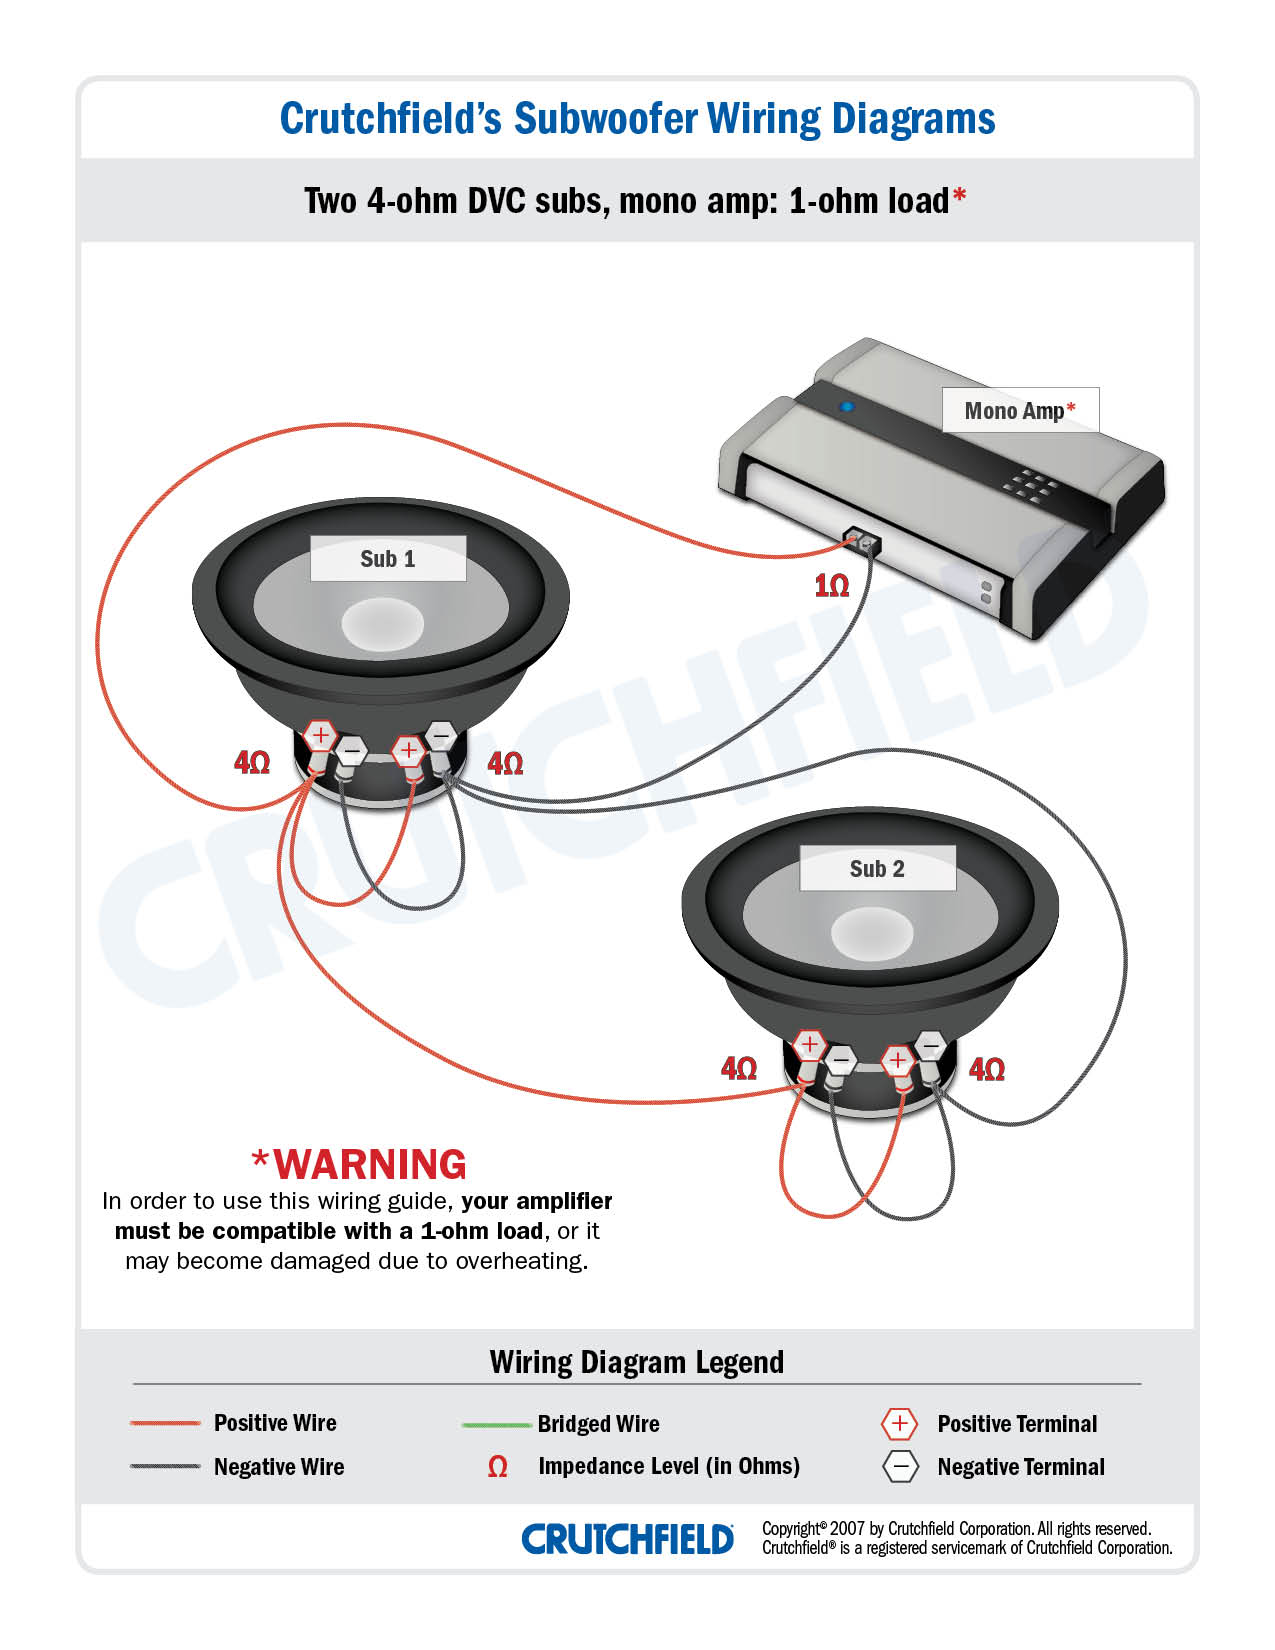 Subwoofer Wiring Diagrams — How to Wire Your Subs on 2 ohm to 1 ohm, 1 ohm wiring-diagram, 2 ohm amp, 4 ohm wiring-diagram, 2 ohm and a 4 ohm wiring digram, 2 ohm speaker wiring configurations, 2 ohm speaker wiring diagrams, 2 ohm dvc wiring, 2 ohm subwoofer,